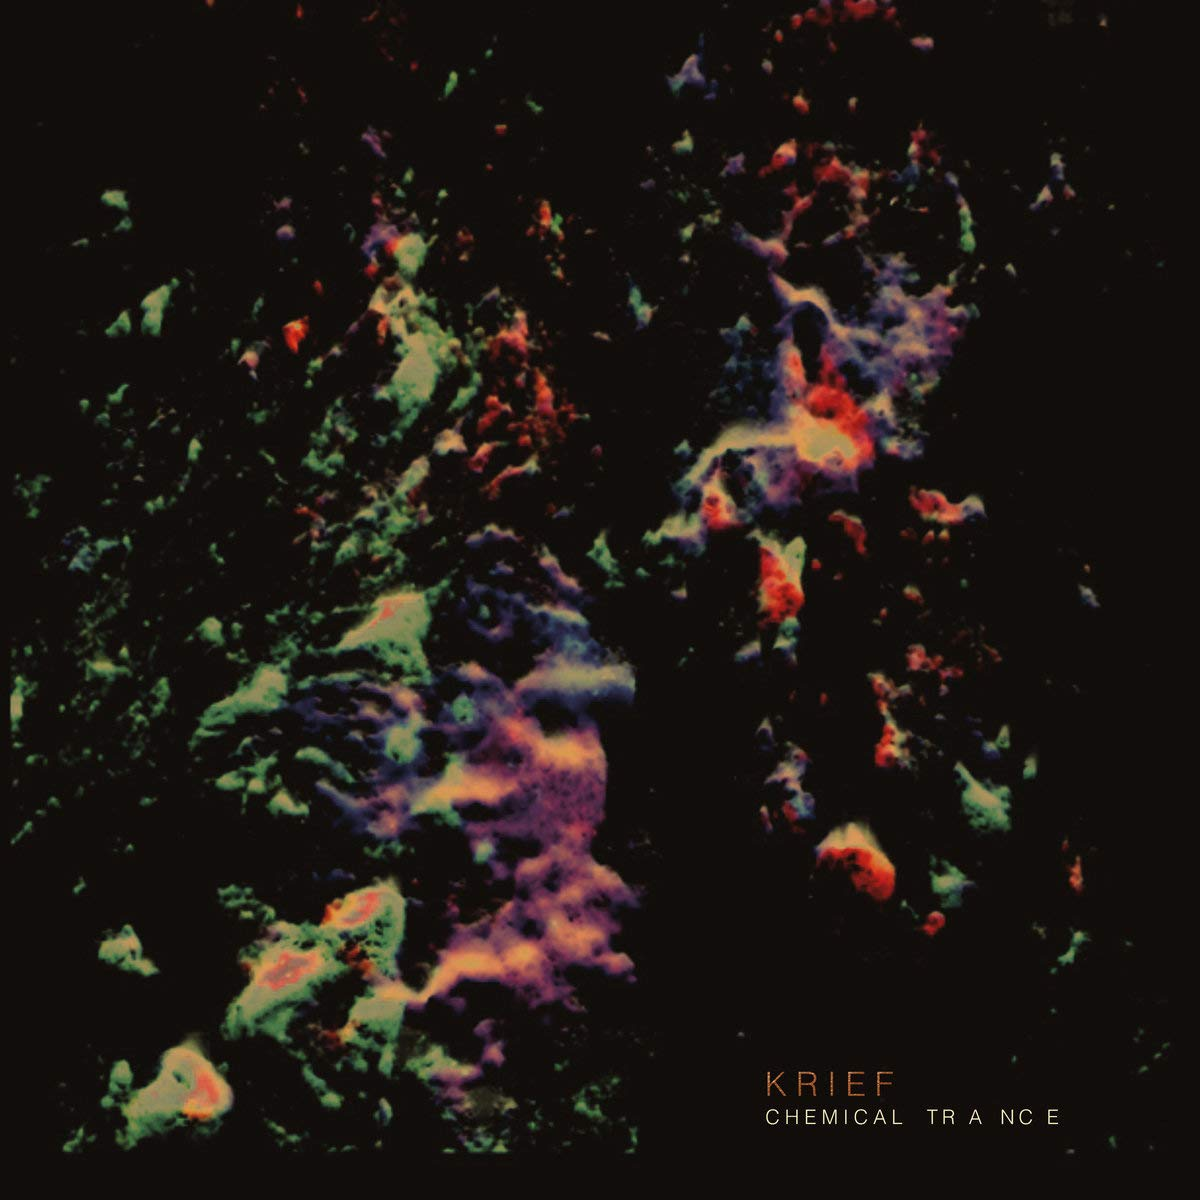 Krief – Chemical Trance (2020) [FLAC]